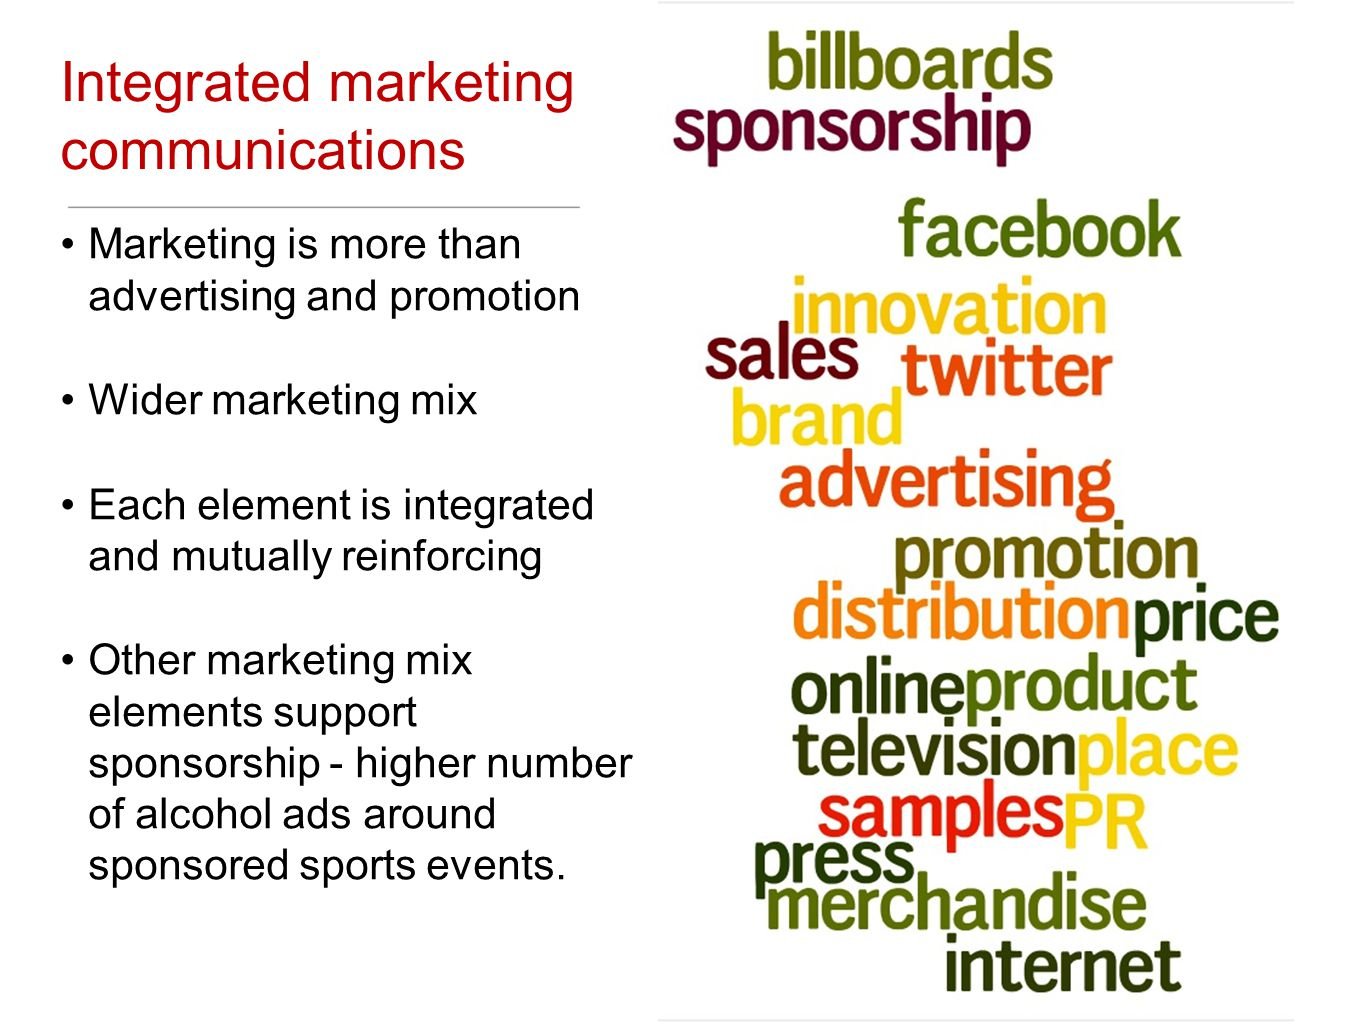 Integrated marketing communications Marketing is more than advertising and promotion Wider marketing mix Each element is integrated and mutually reinforcing Other marketing mix elements support sponsorship - higher number of alcohol ads around sponsored sports events.